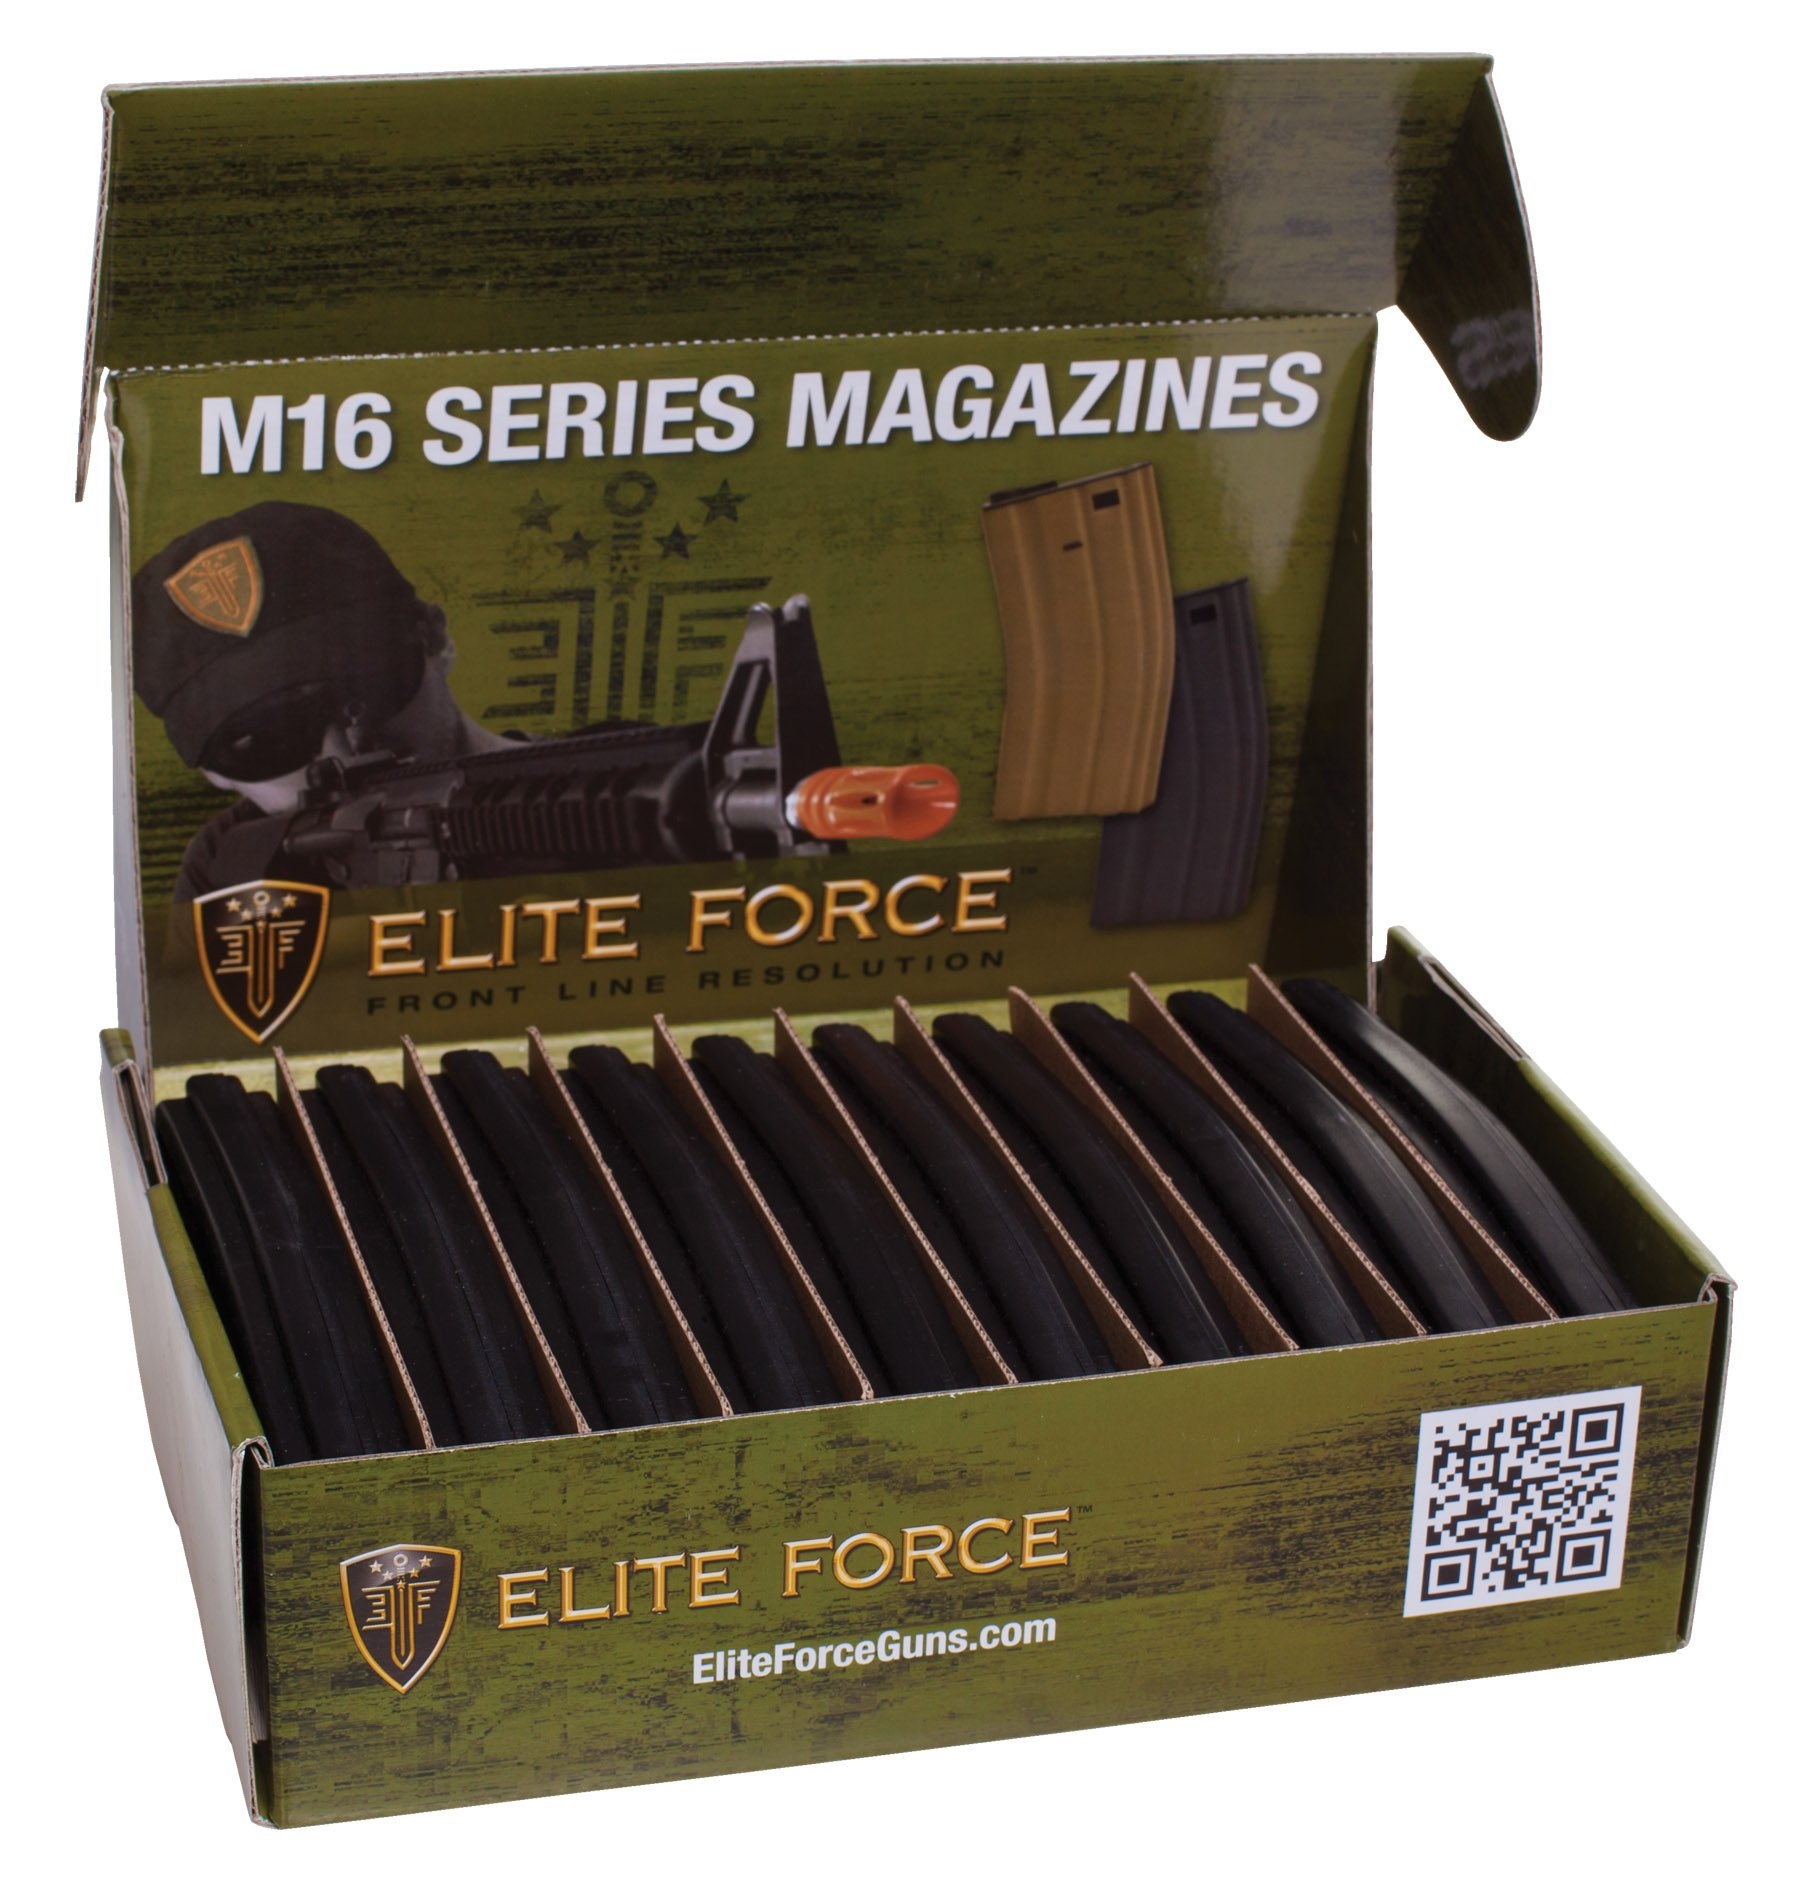 Elite Force M4 and M16 6mm BB Airsoft Gun Magazine, Black (140 Rounds), Pack of 10 by Elite Force